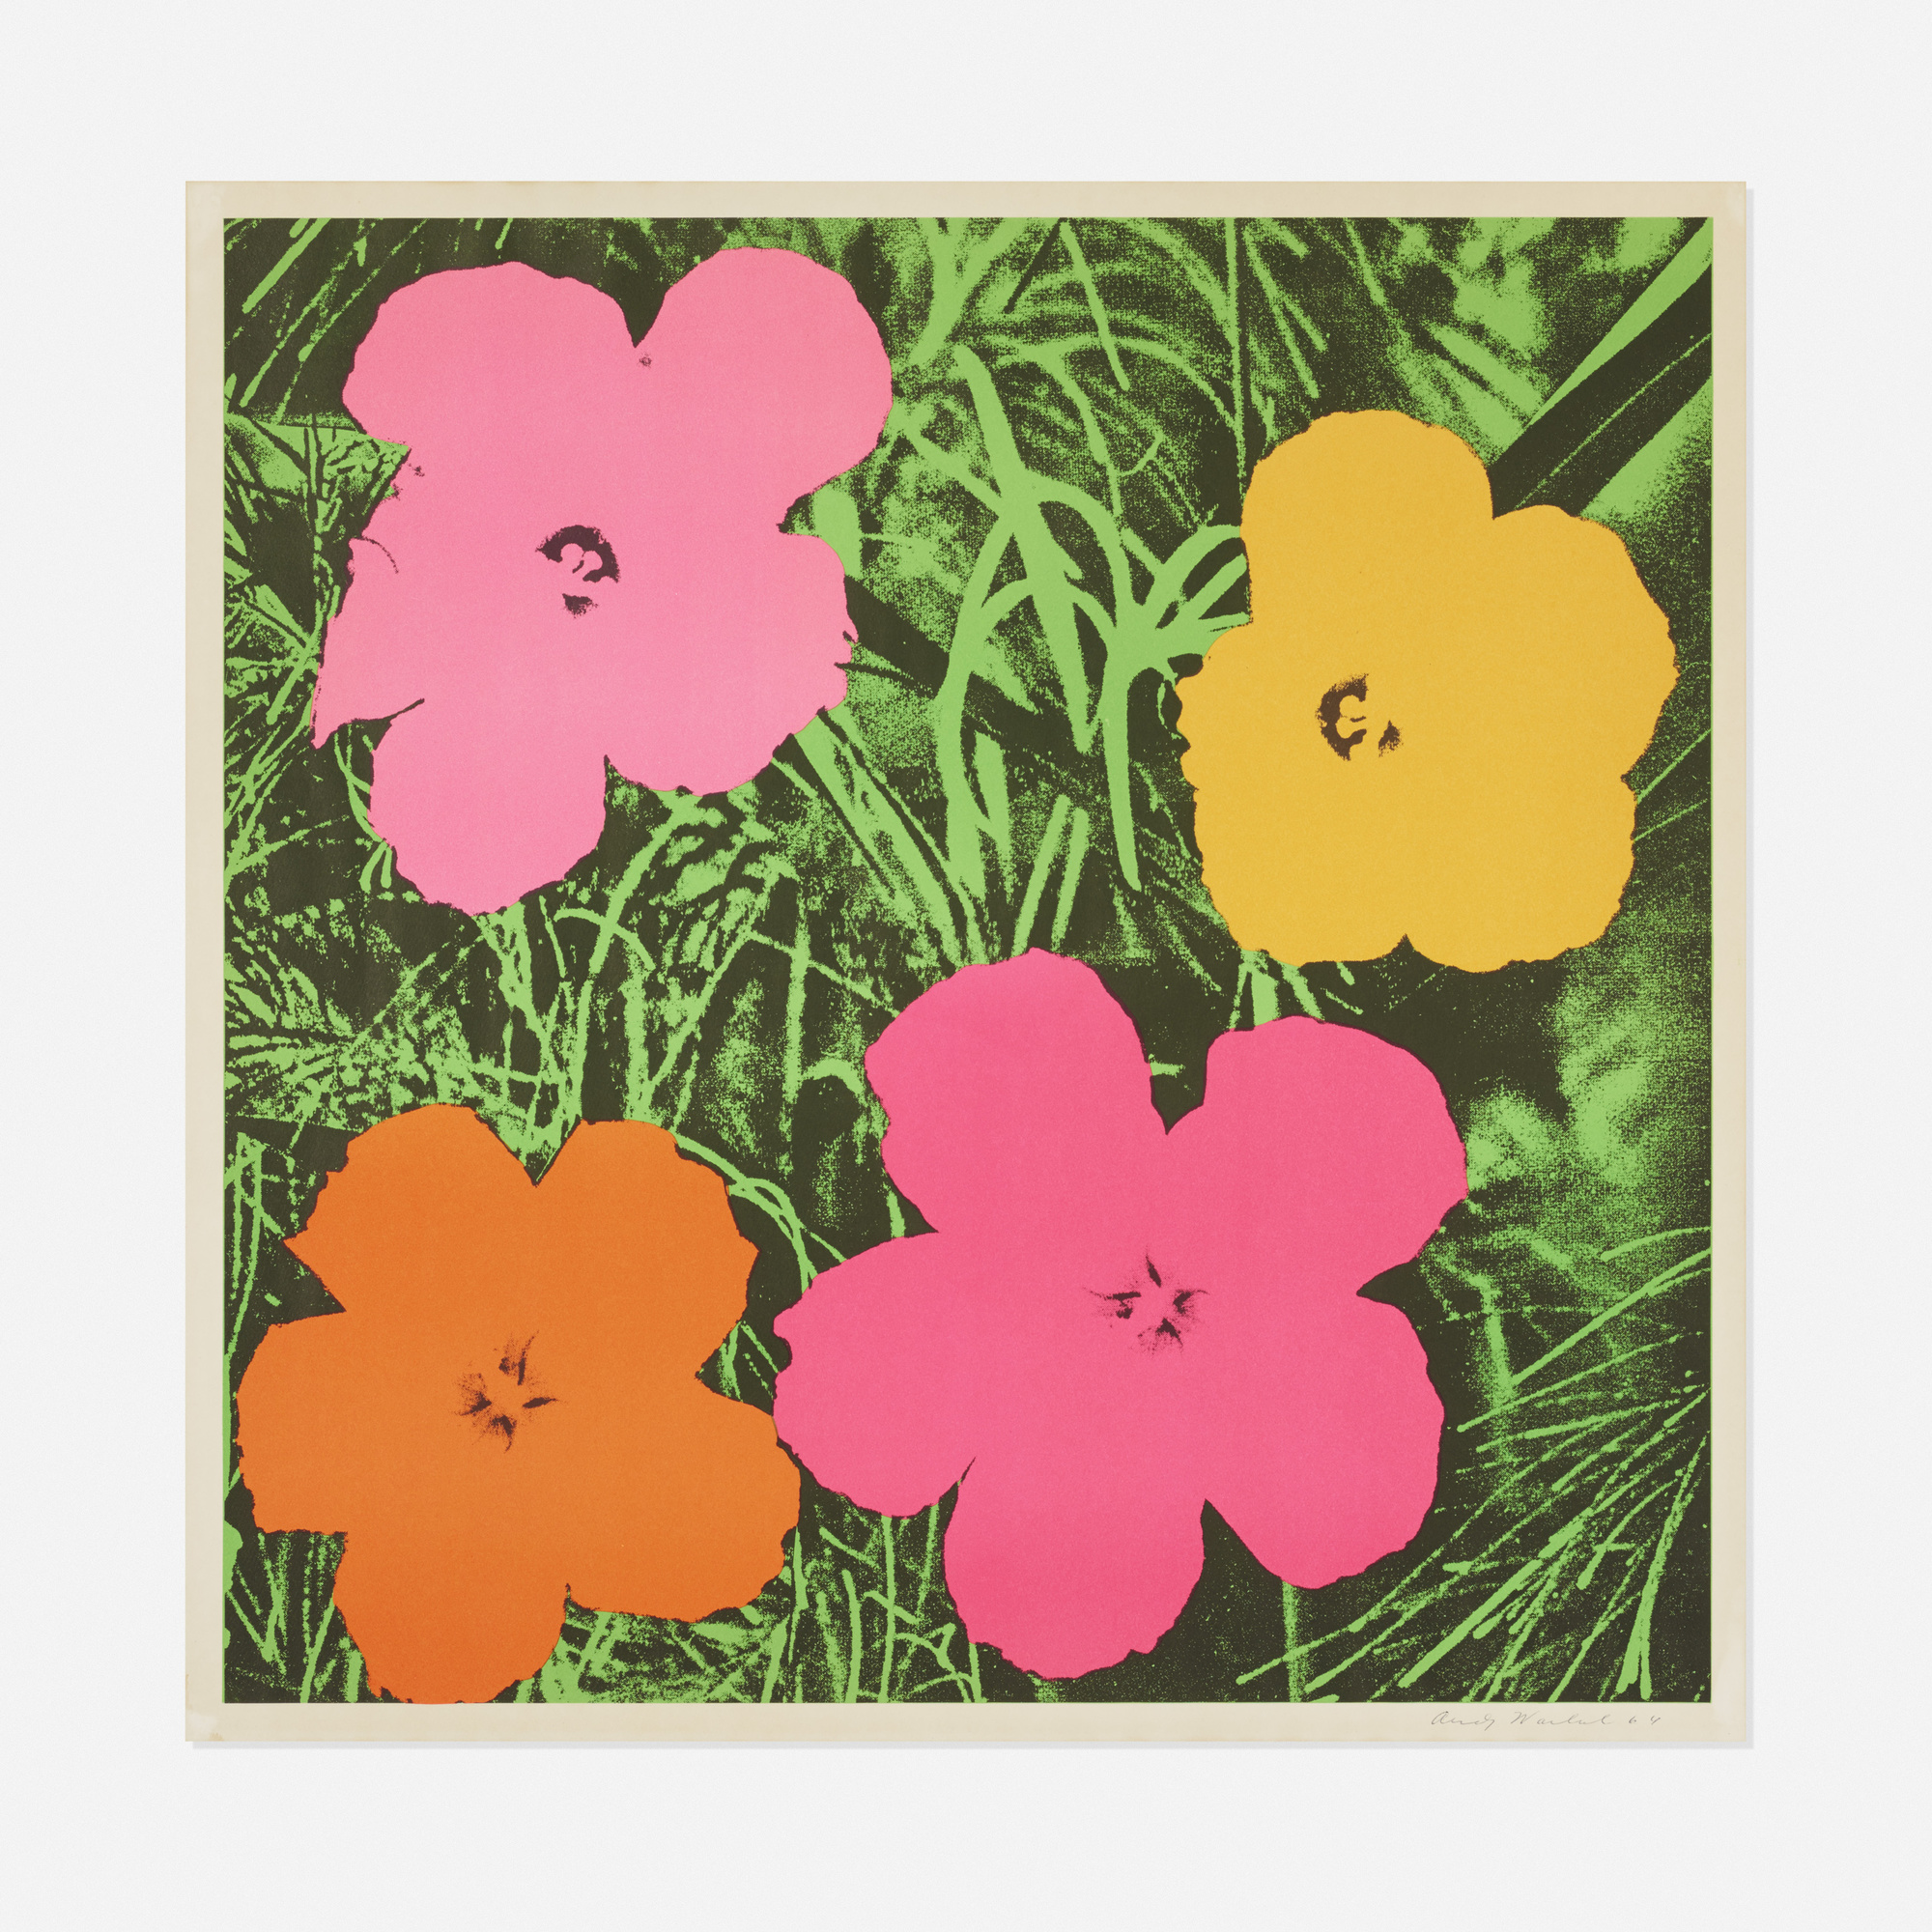 120: Andy Warhol / Flowers (1 of 2)